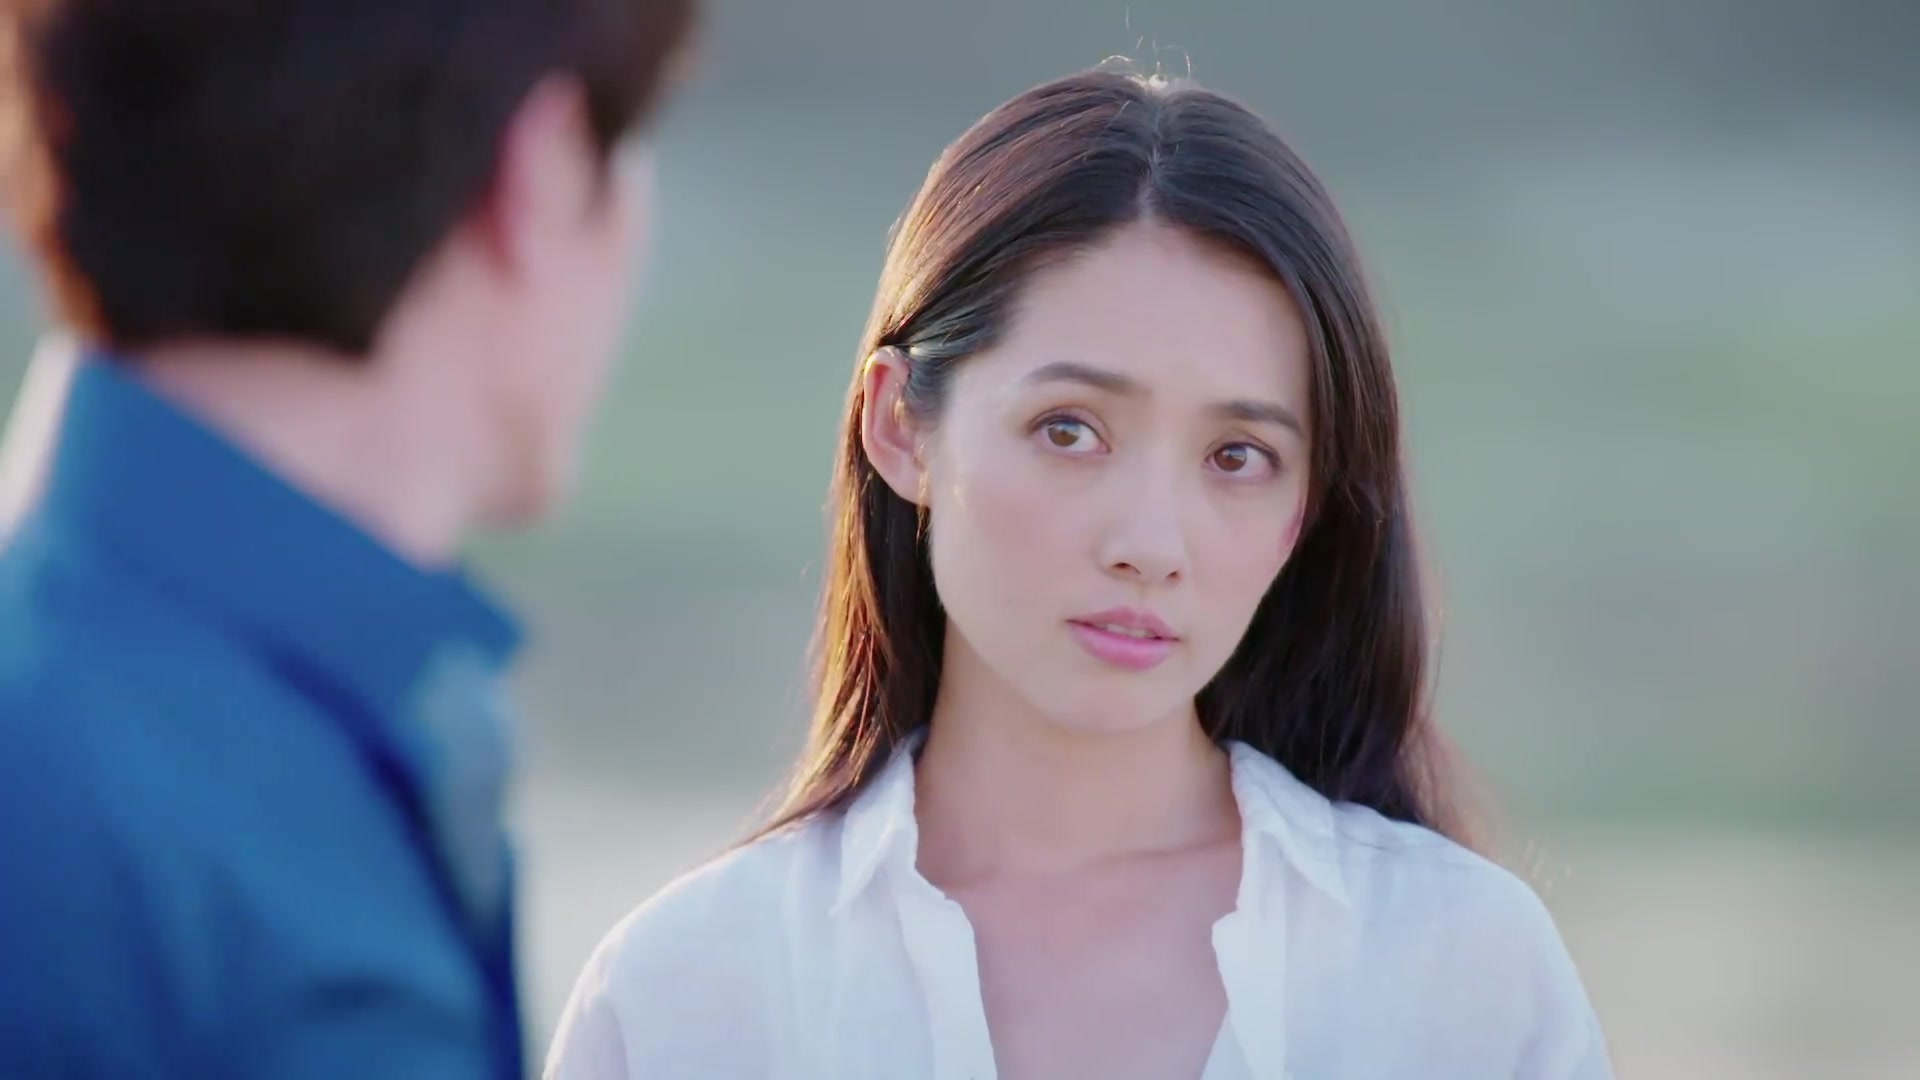 The Starry Night, The Starry Sea Episode 10